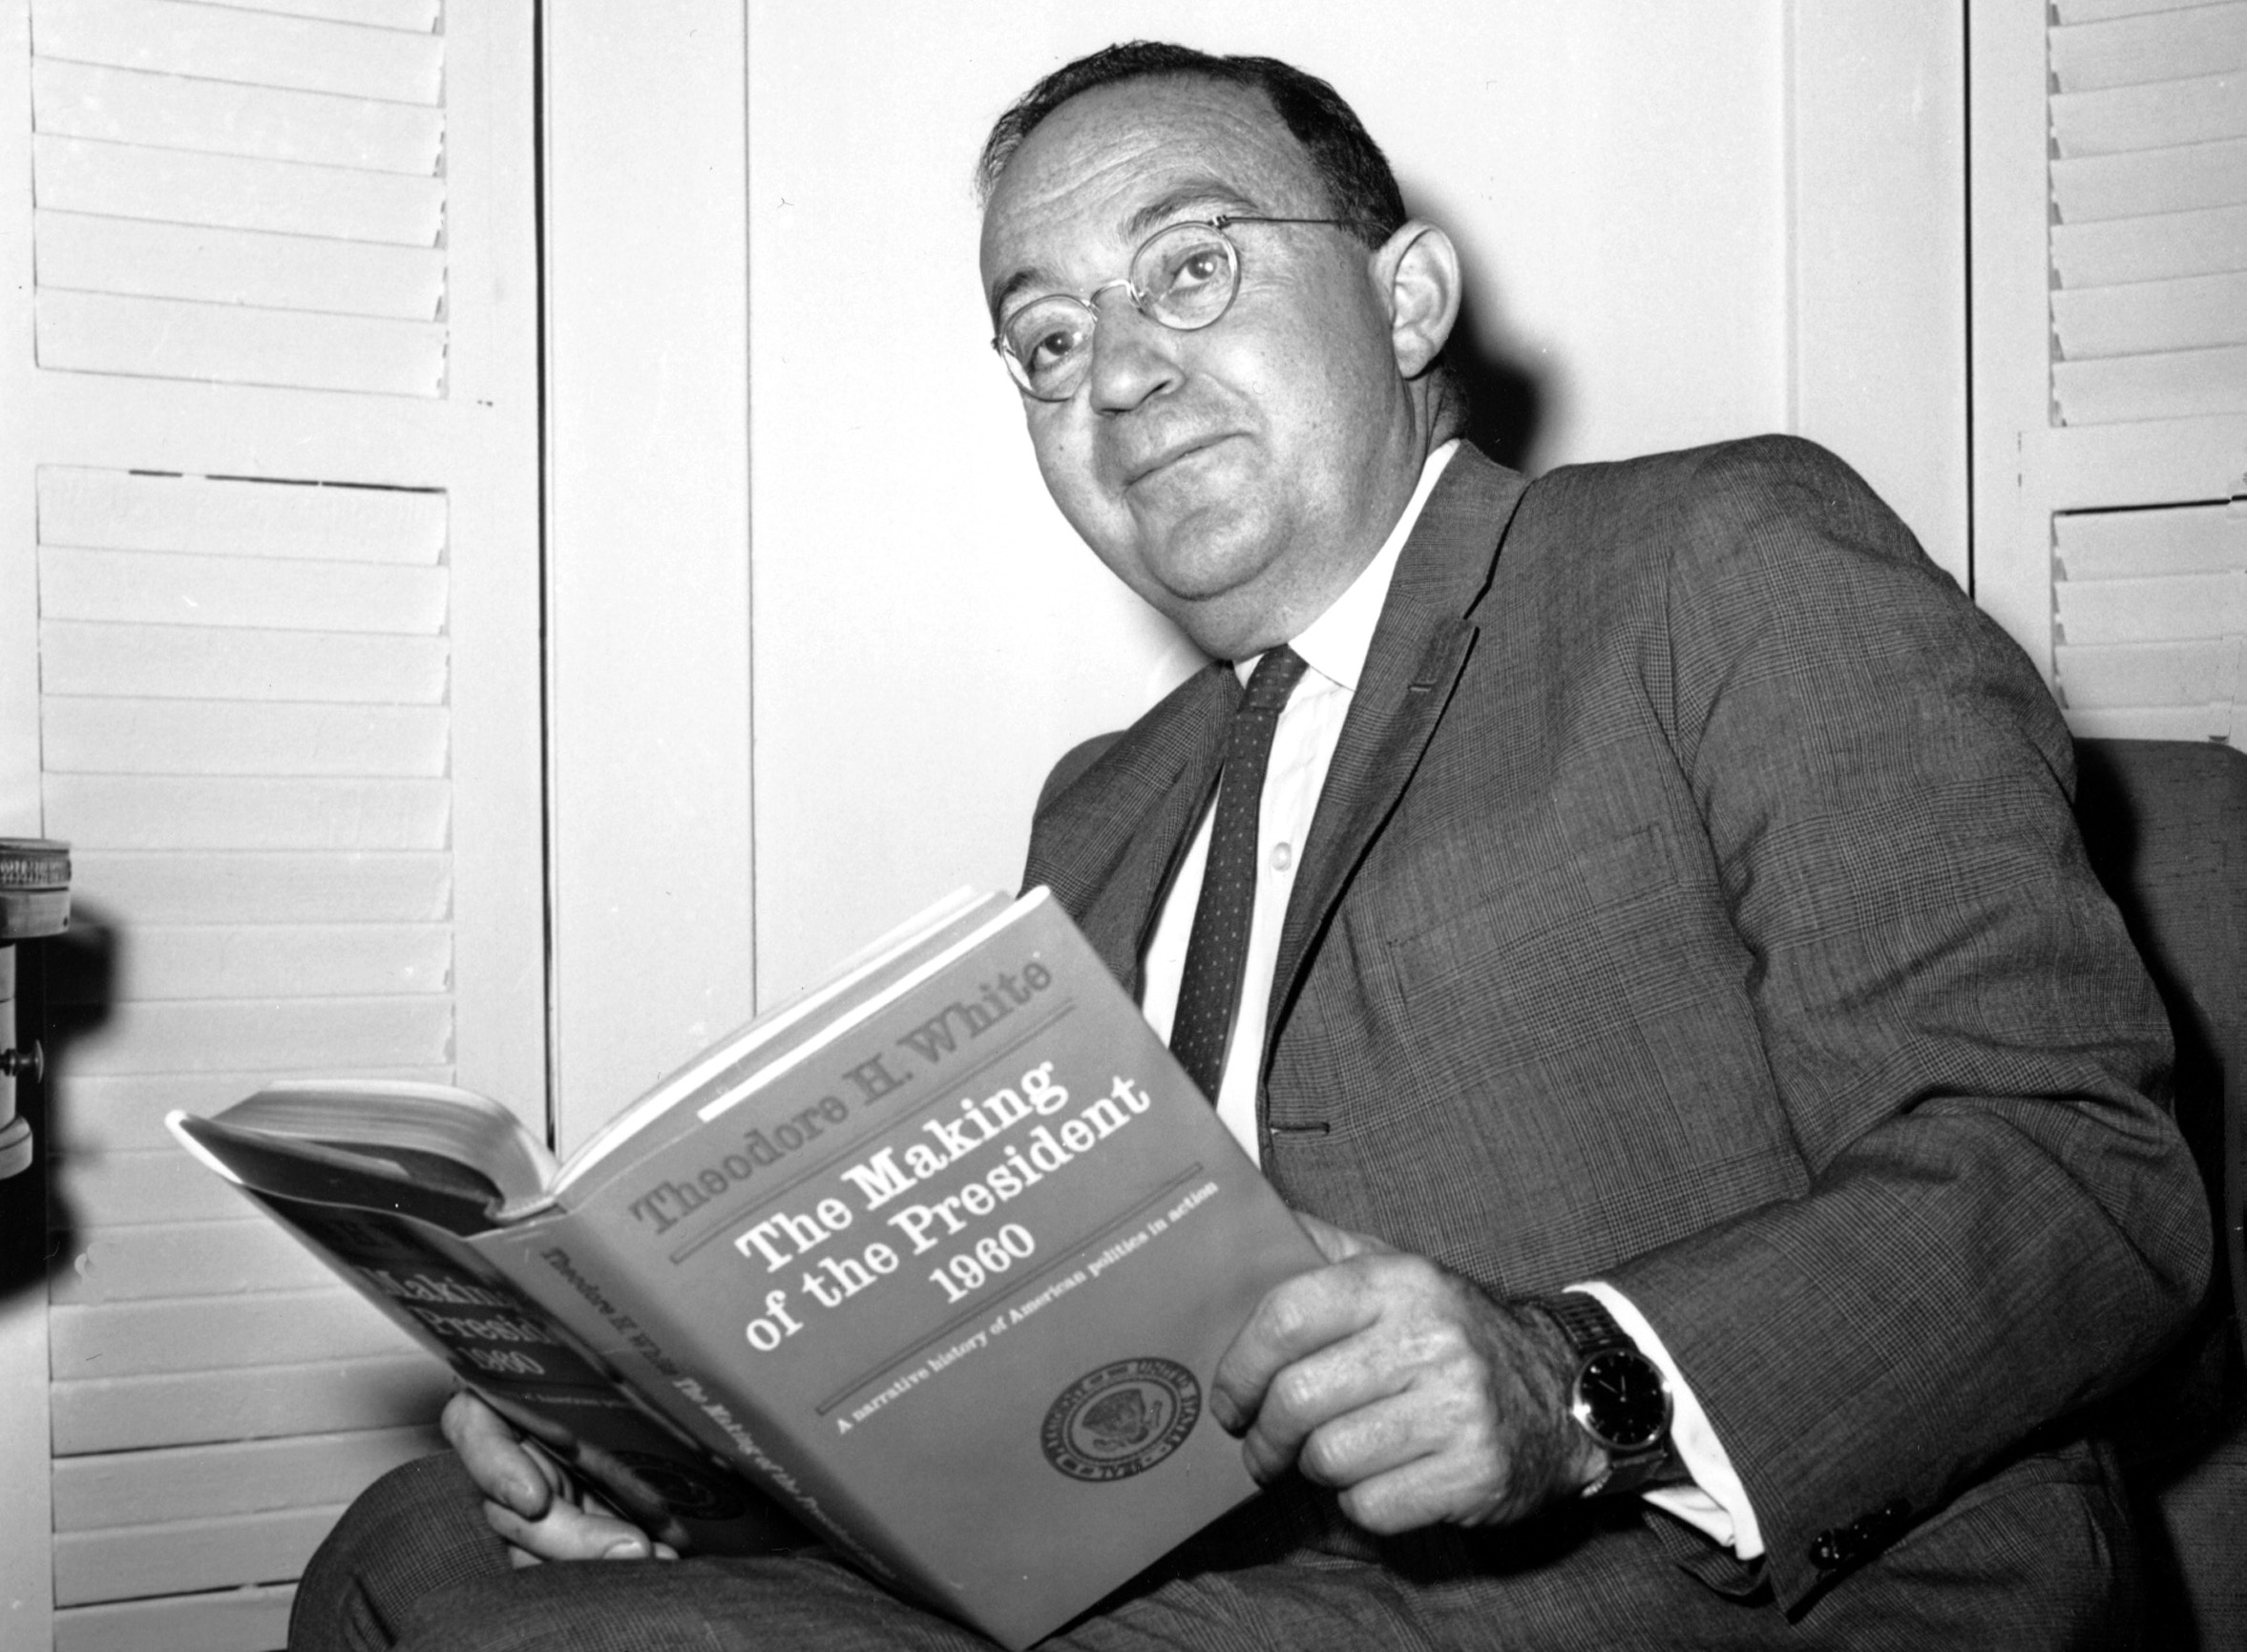 Author Theodore H. White poses in his New York City apartment with the book that won him the Pulitzer Prize on May 7, 1962.  White won for his book